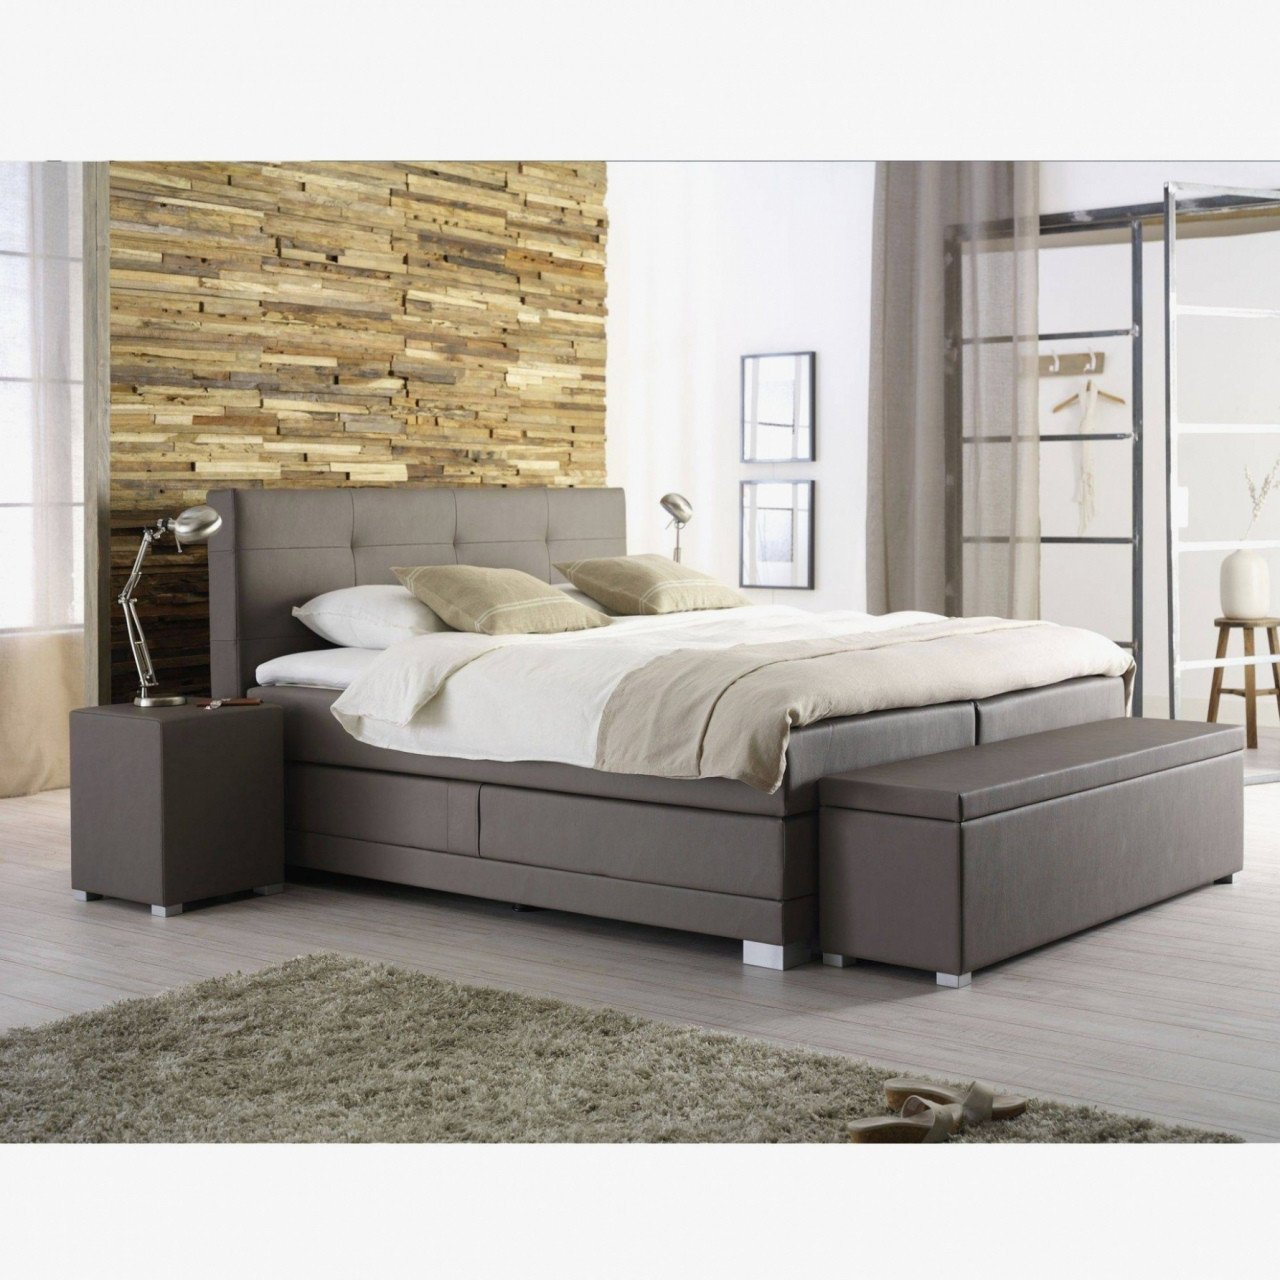 Dark Wood Bedroom Set Fresh Bed with Drawers Under — Procura Home Blog